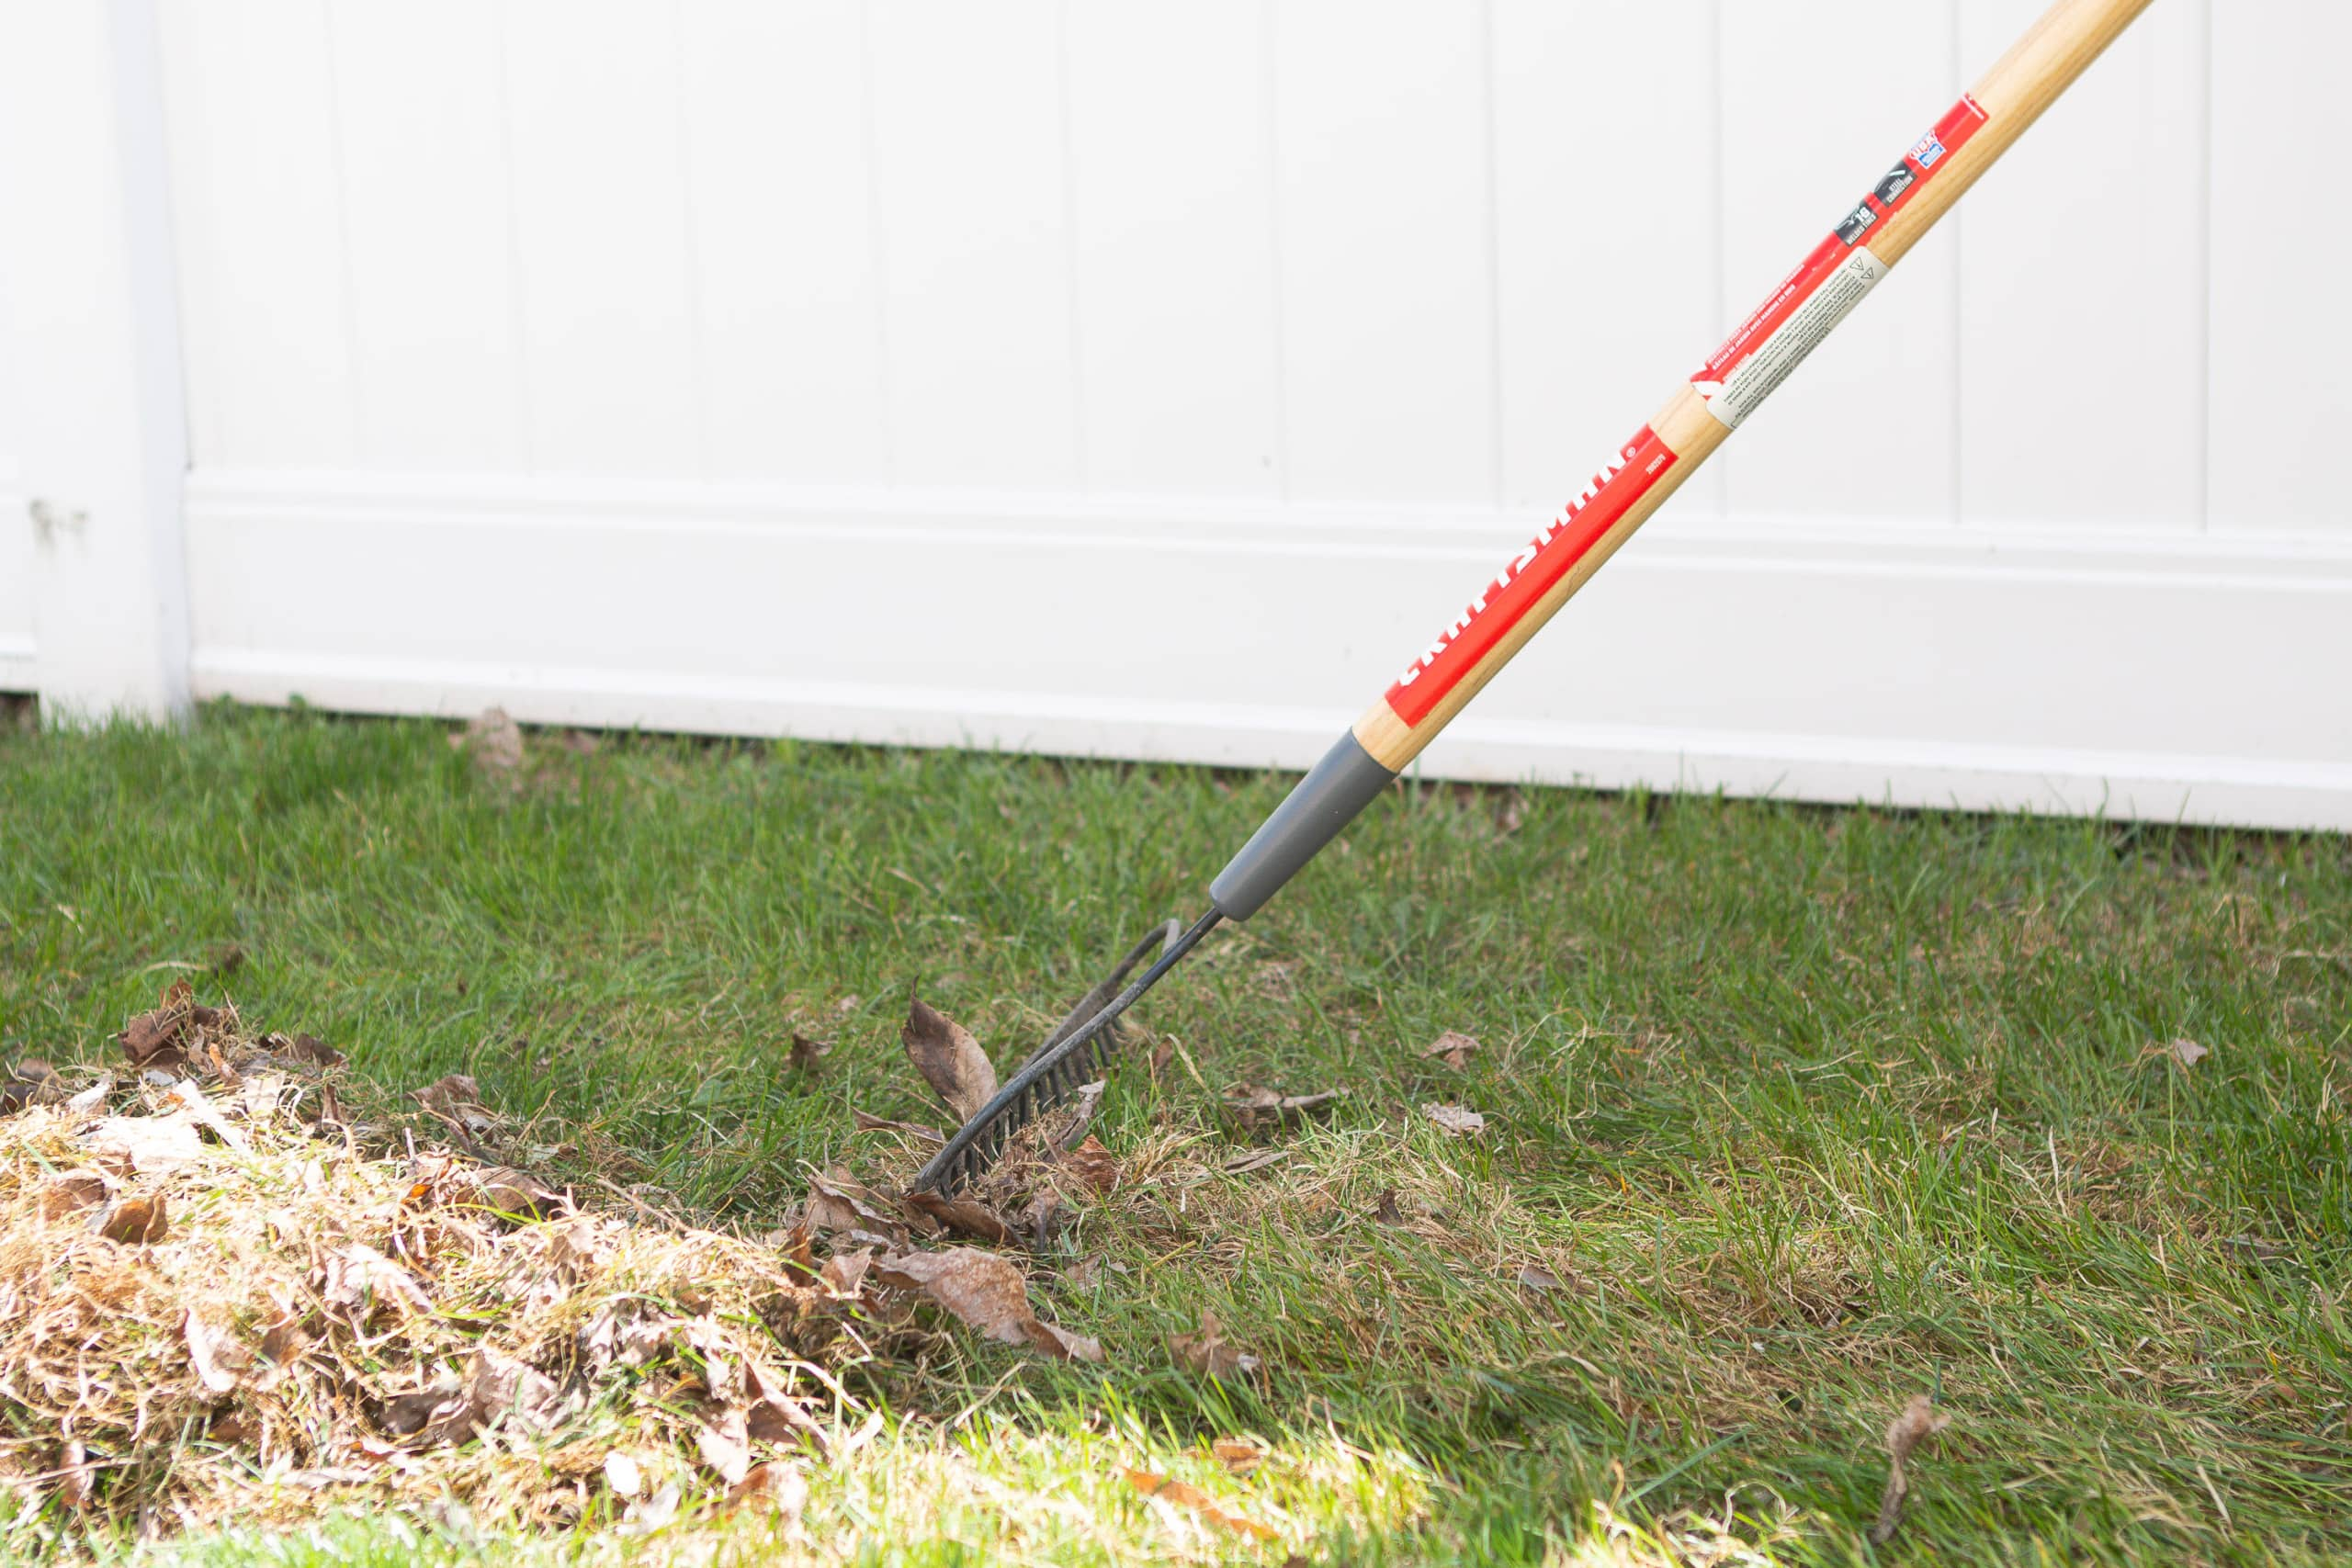 Make sure to rigorously rake your lawn before applying the products